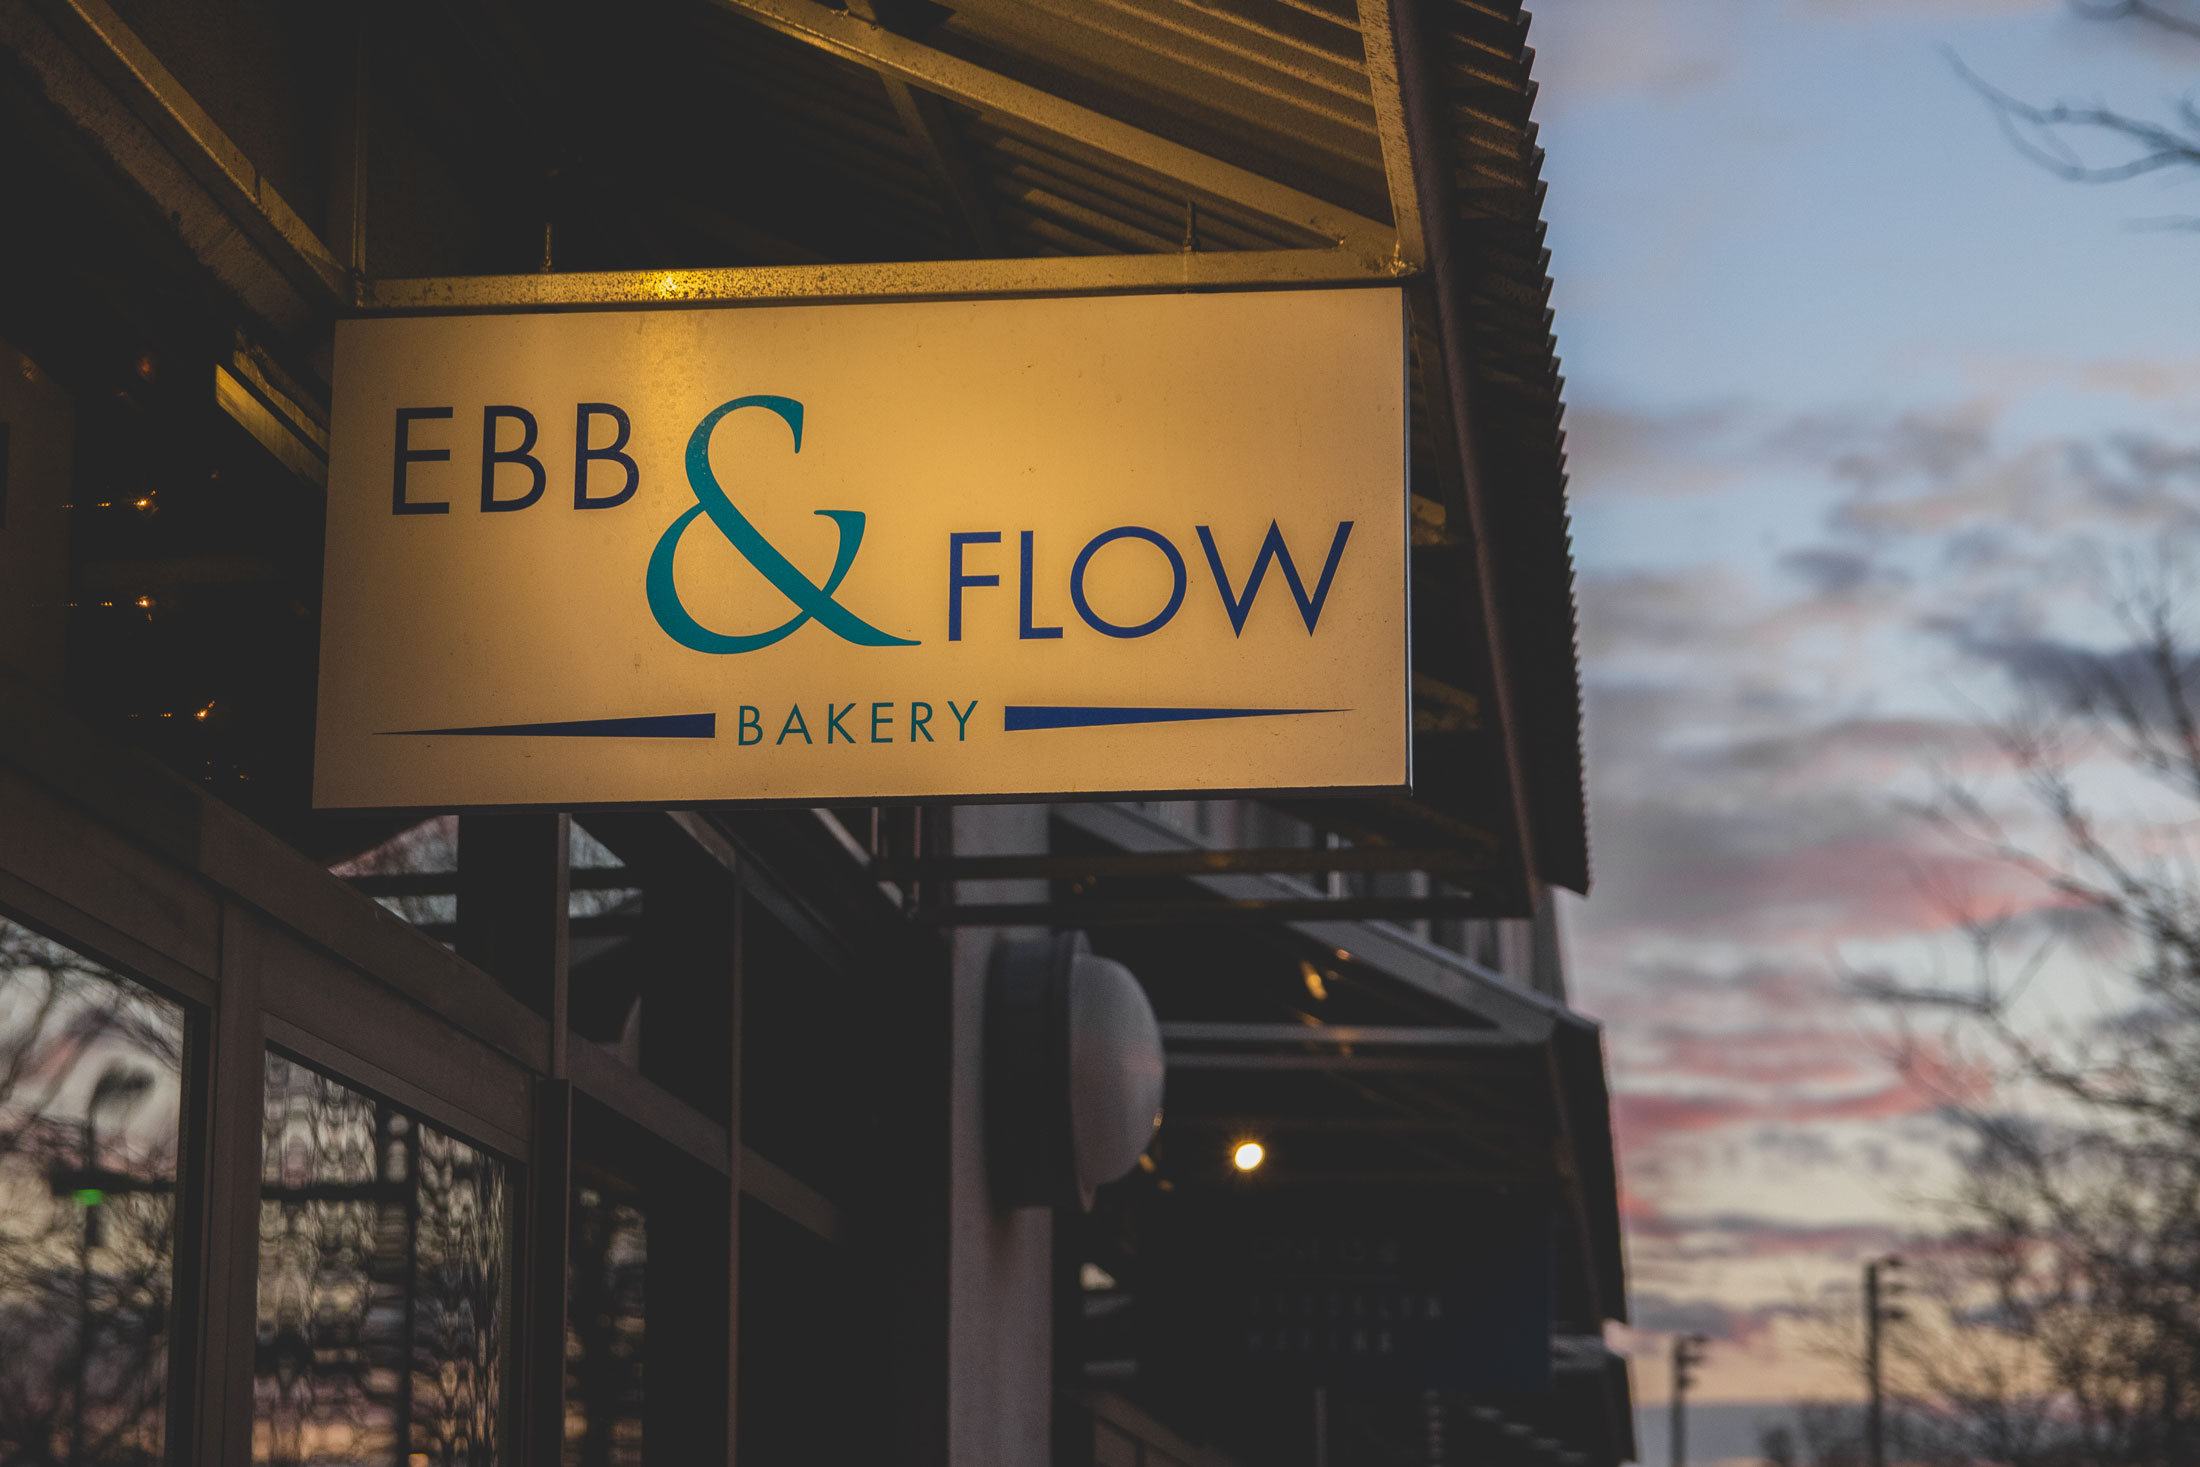 The sign for Ebb & Flow Bakery.